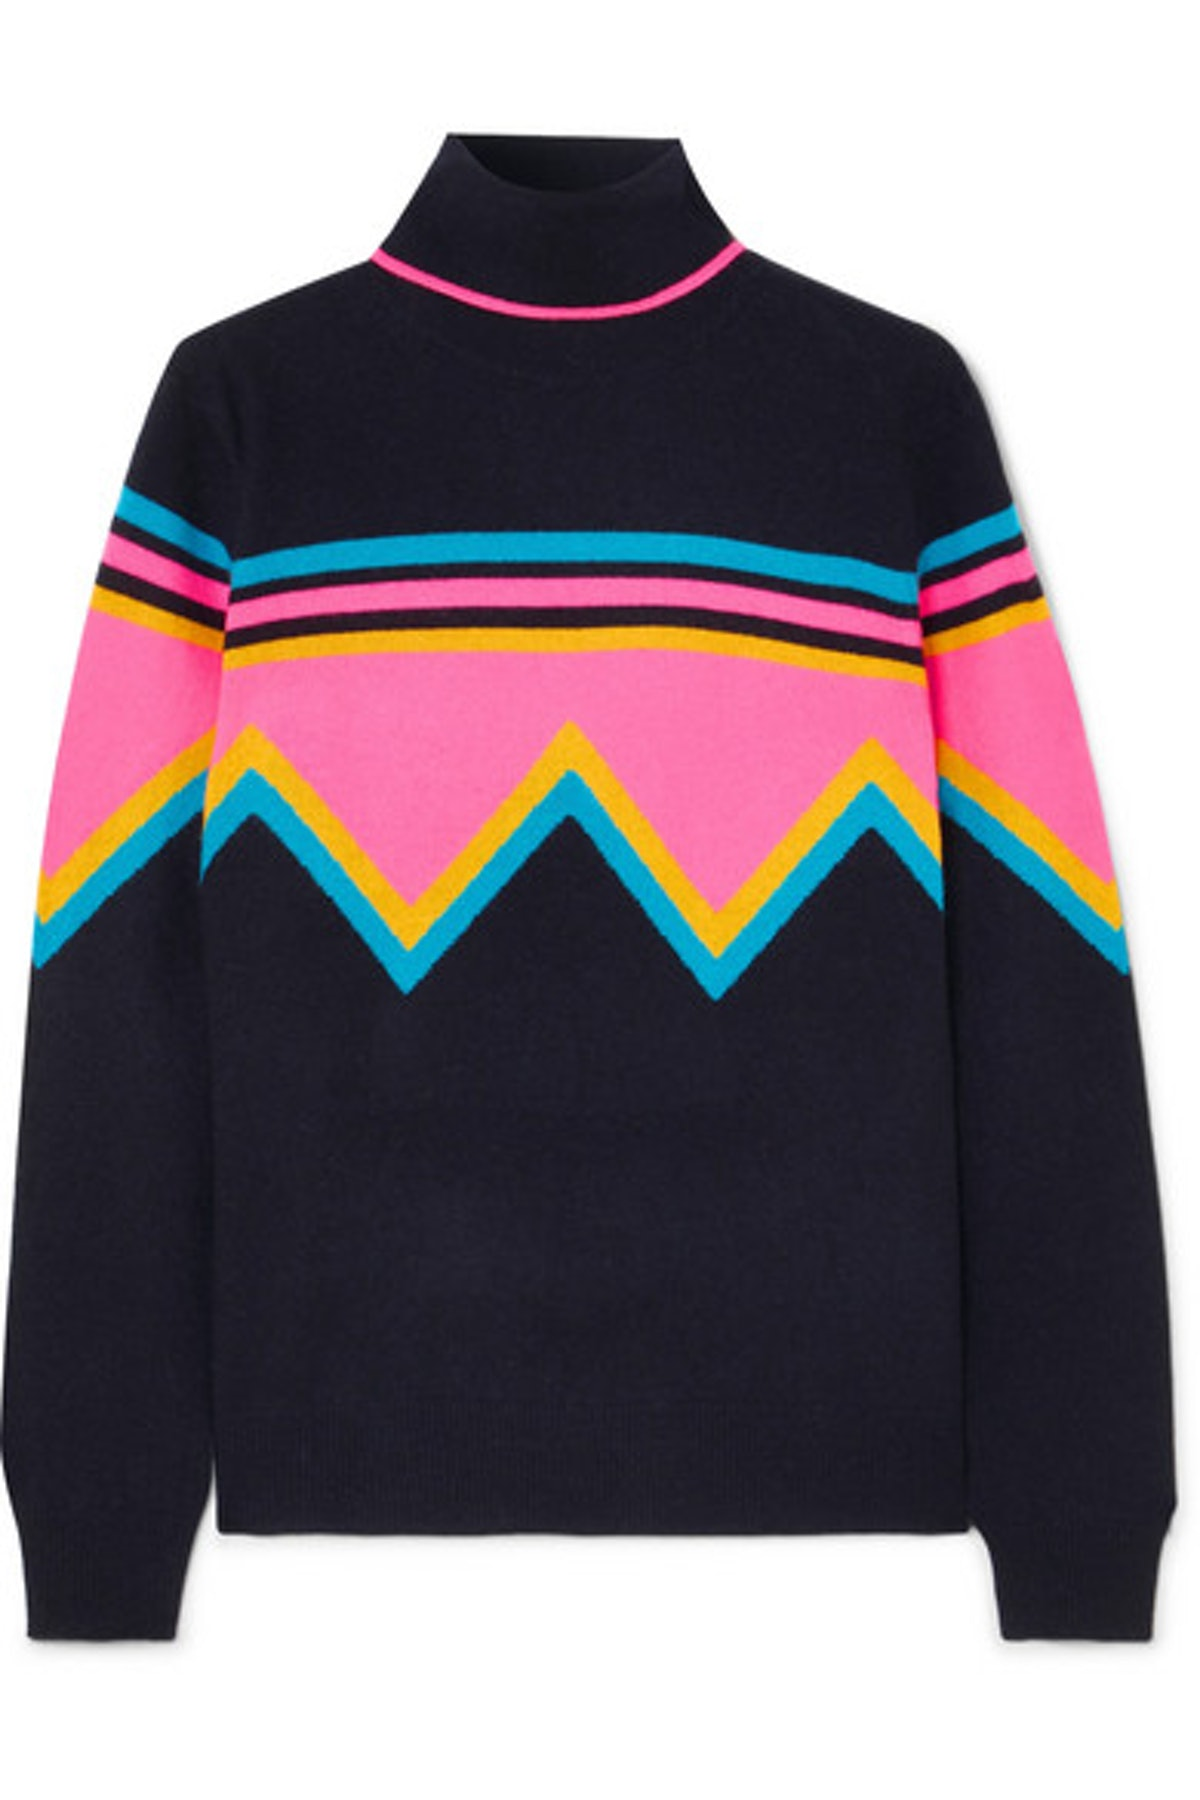 Chinti And Parker Cashmere And Wool-Blend Turtleneck Sweater